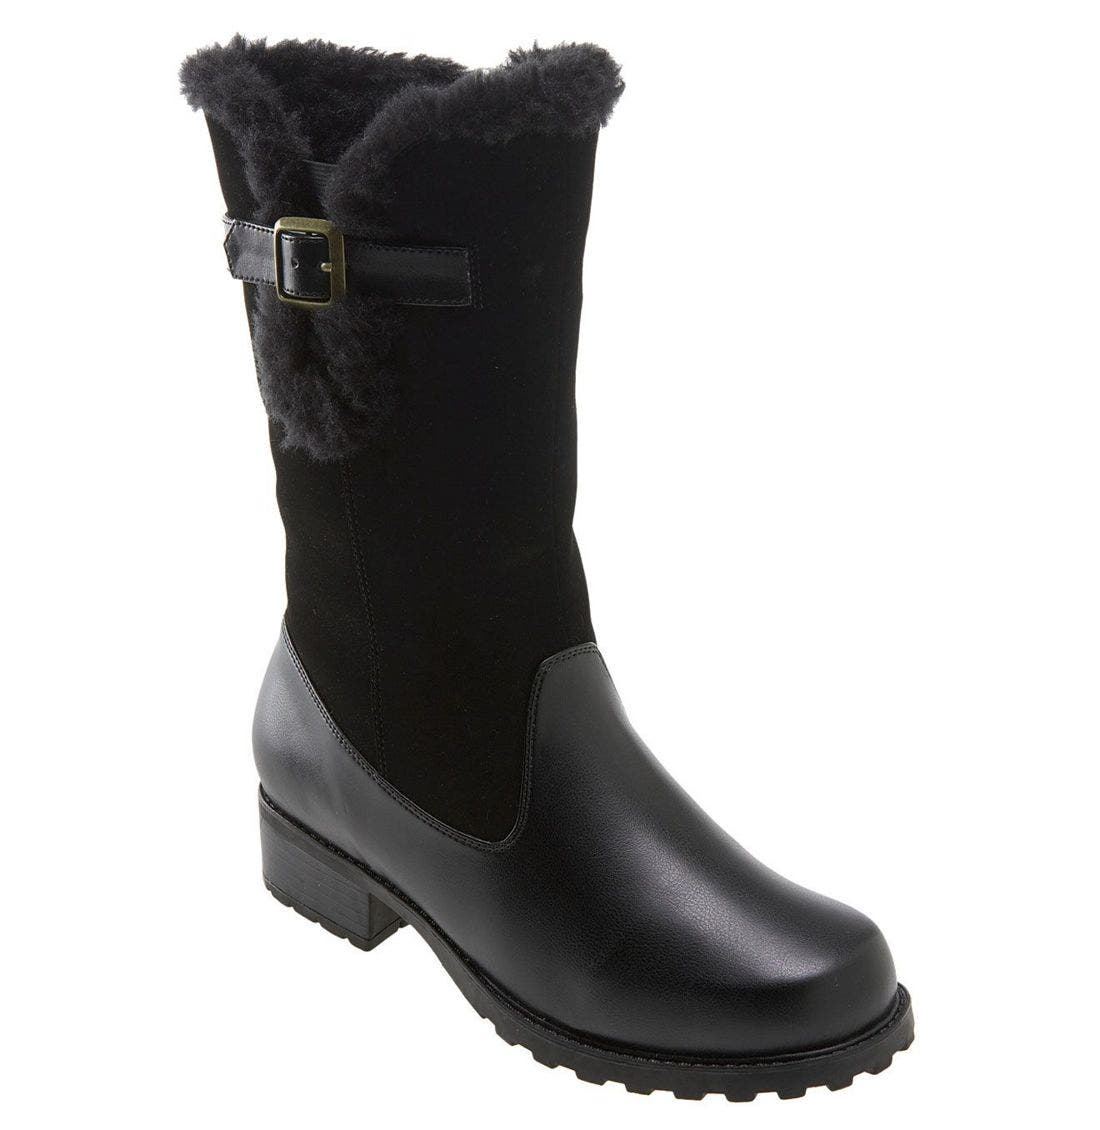 Main Image - Trotters 'Blizzard' Rain Boot